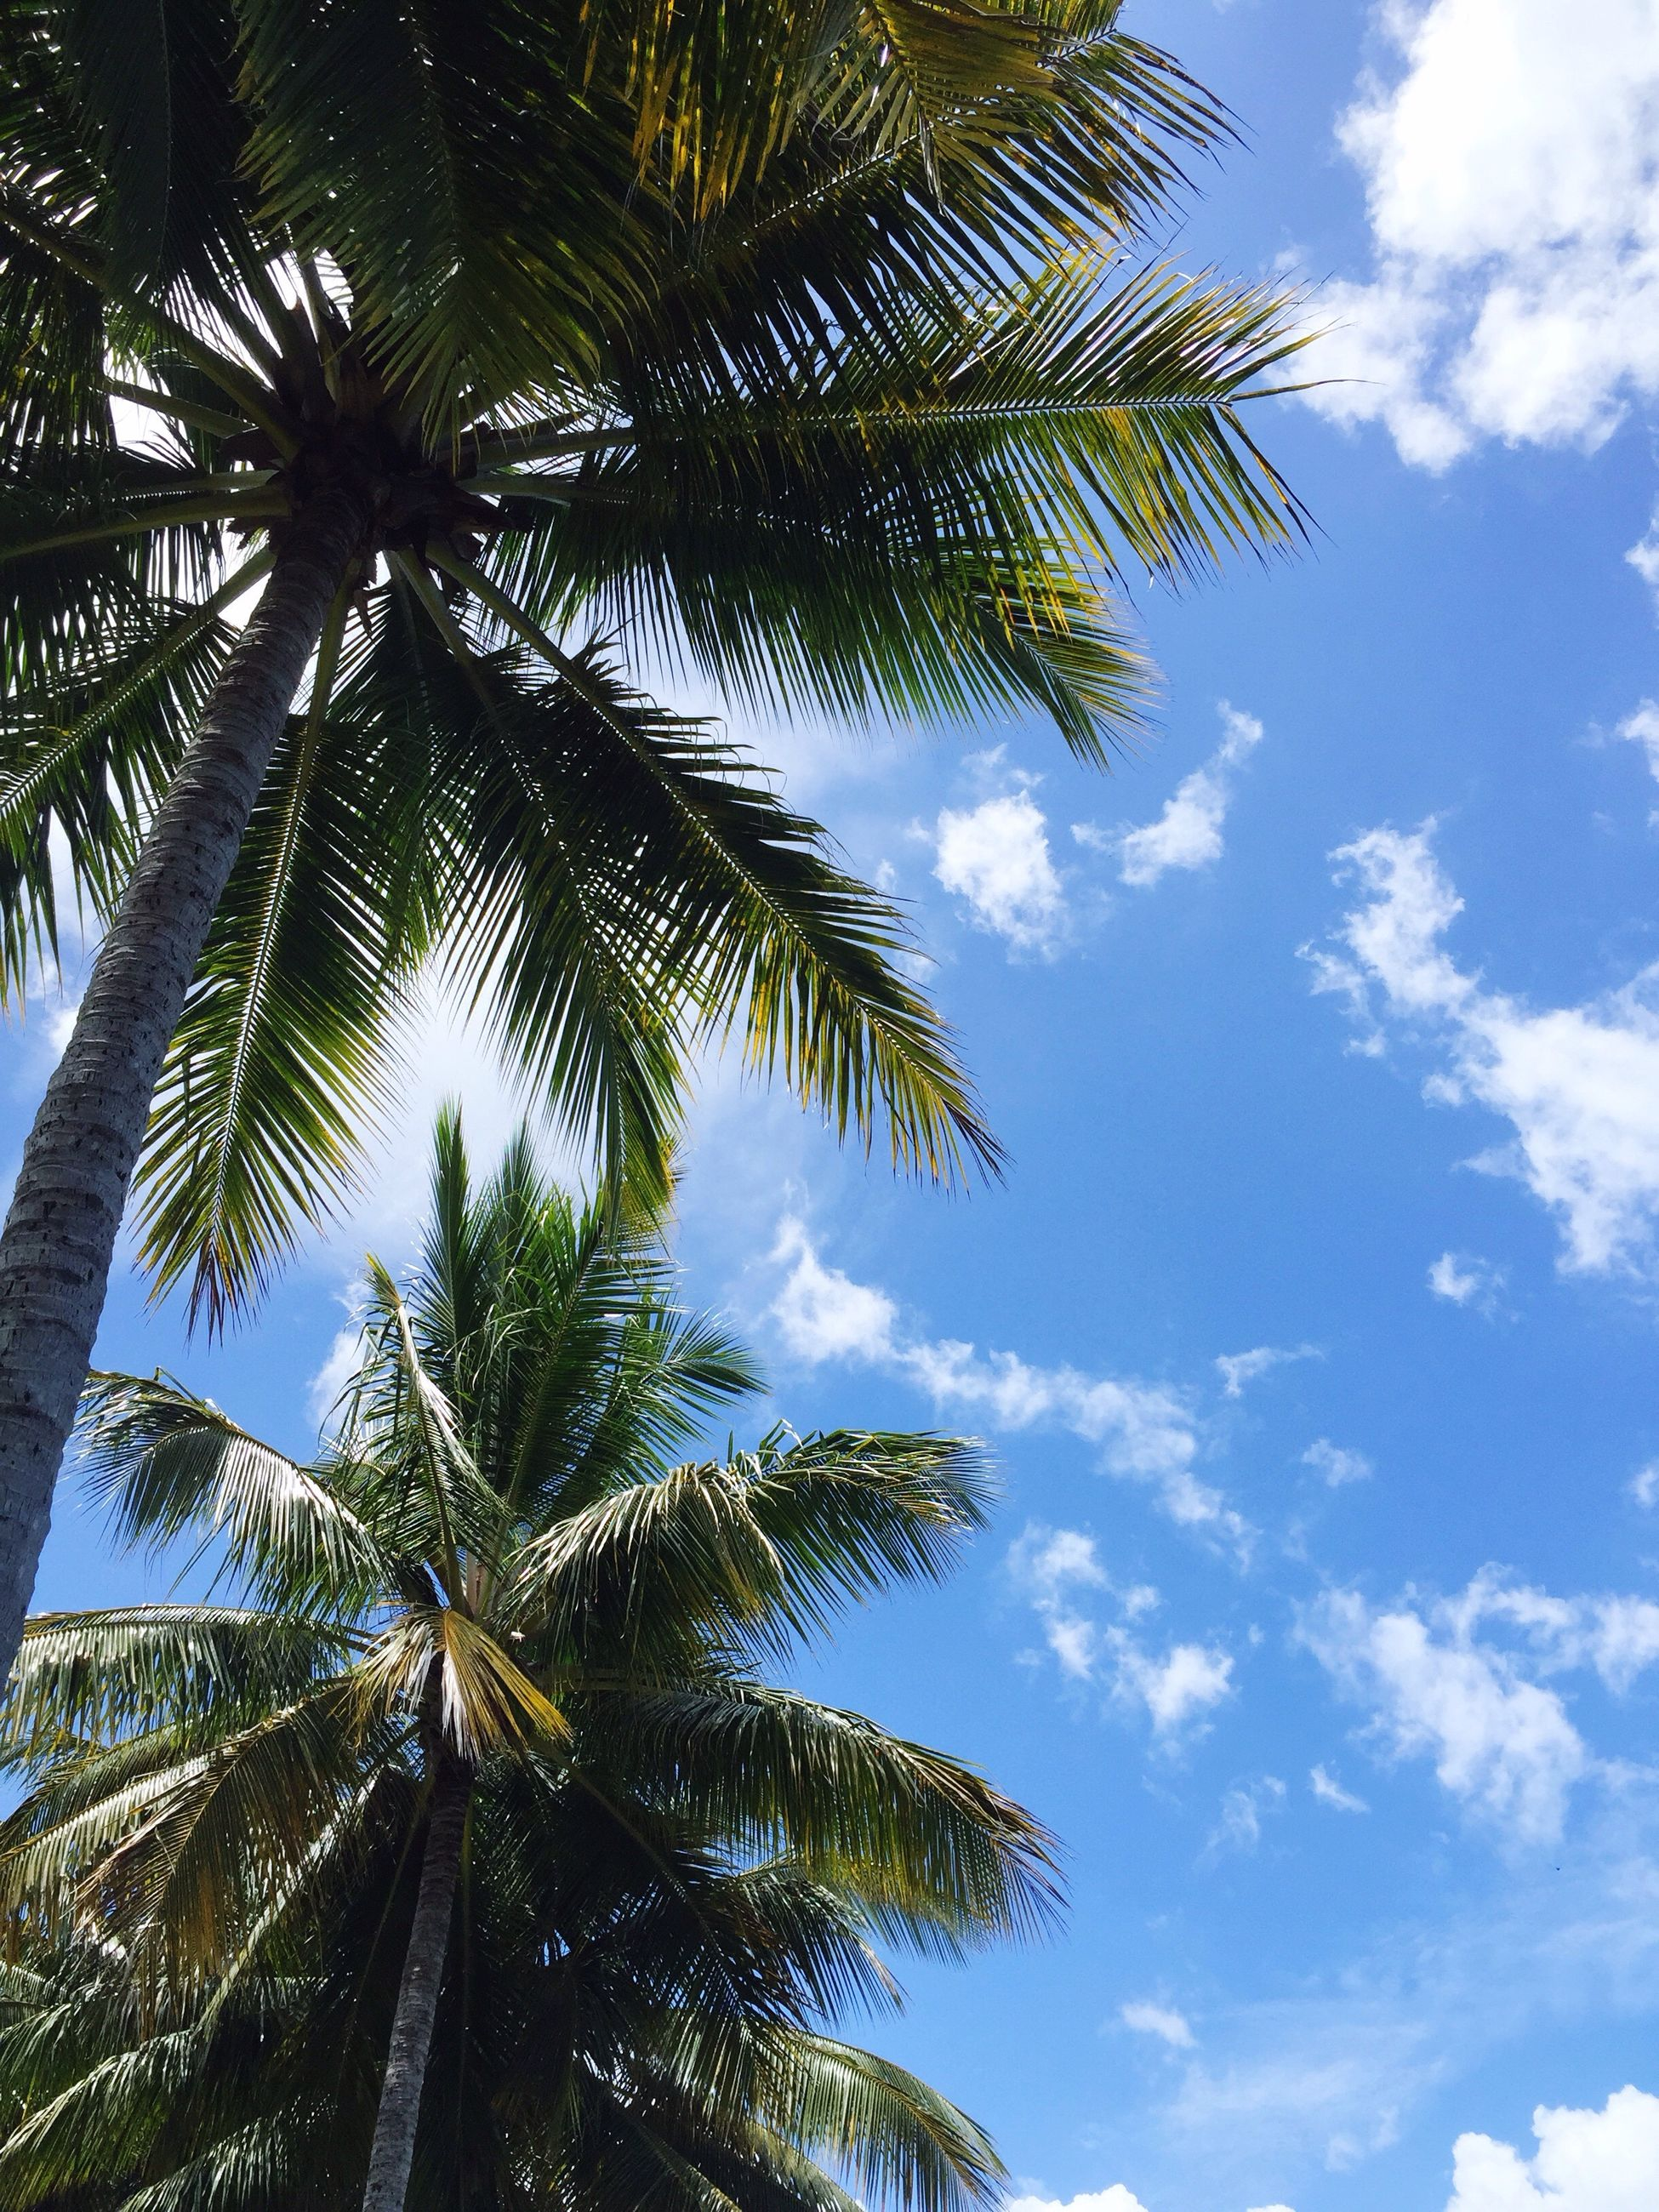 low angle view, tree, sky, palm tree, growth, cloud - sky, branch, nature, cloud, beauty in nature, cloudy, tranquility, tree trunk, tall - high, day, blue, scenics, outdoors, leaf, no people